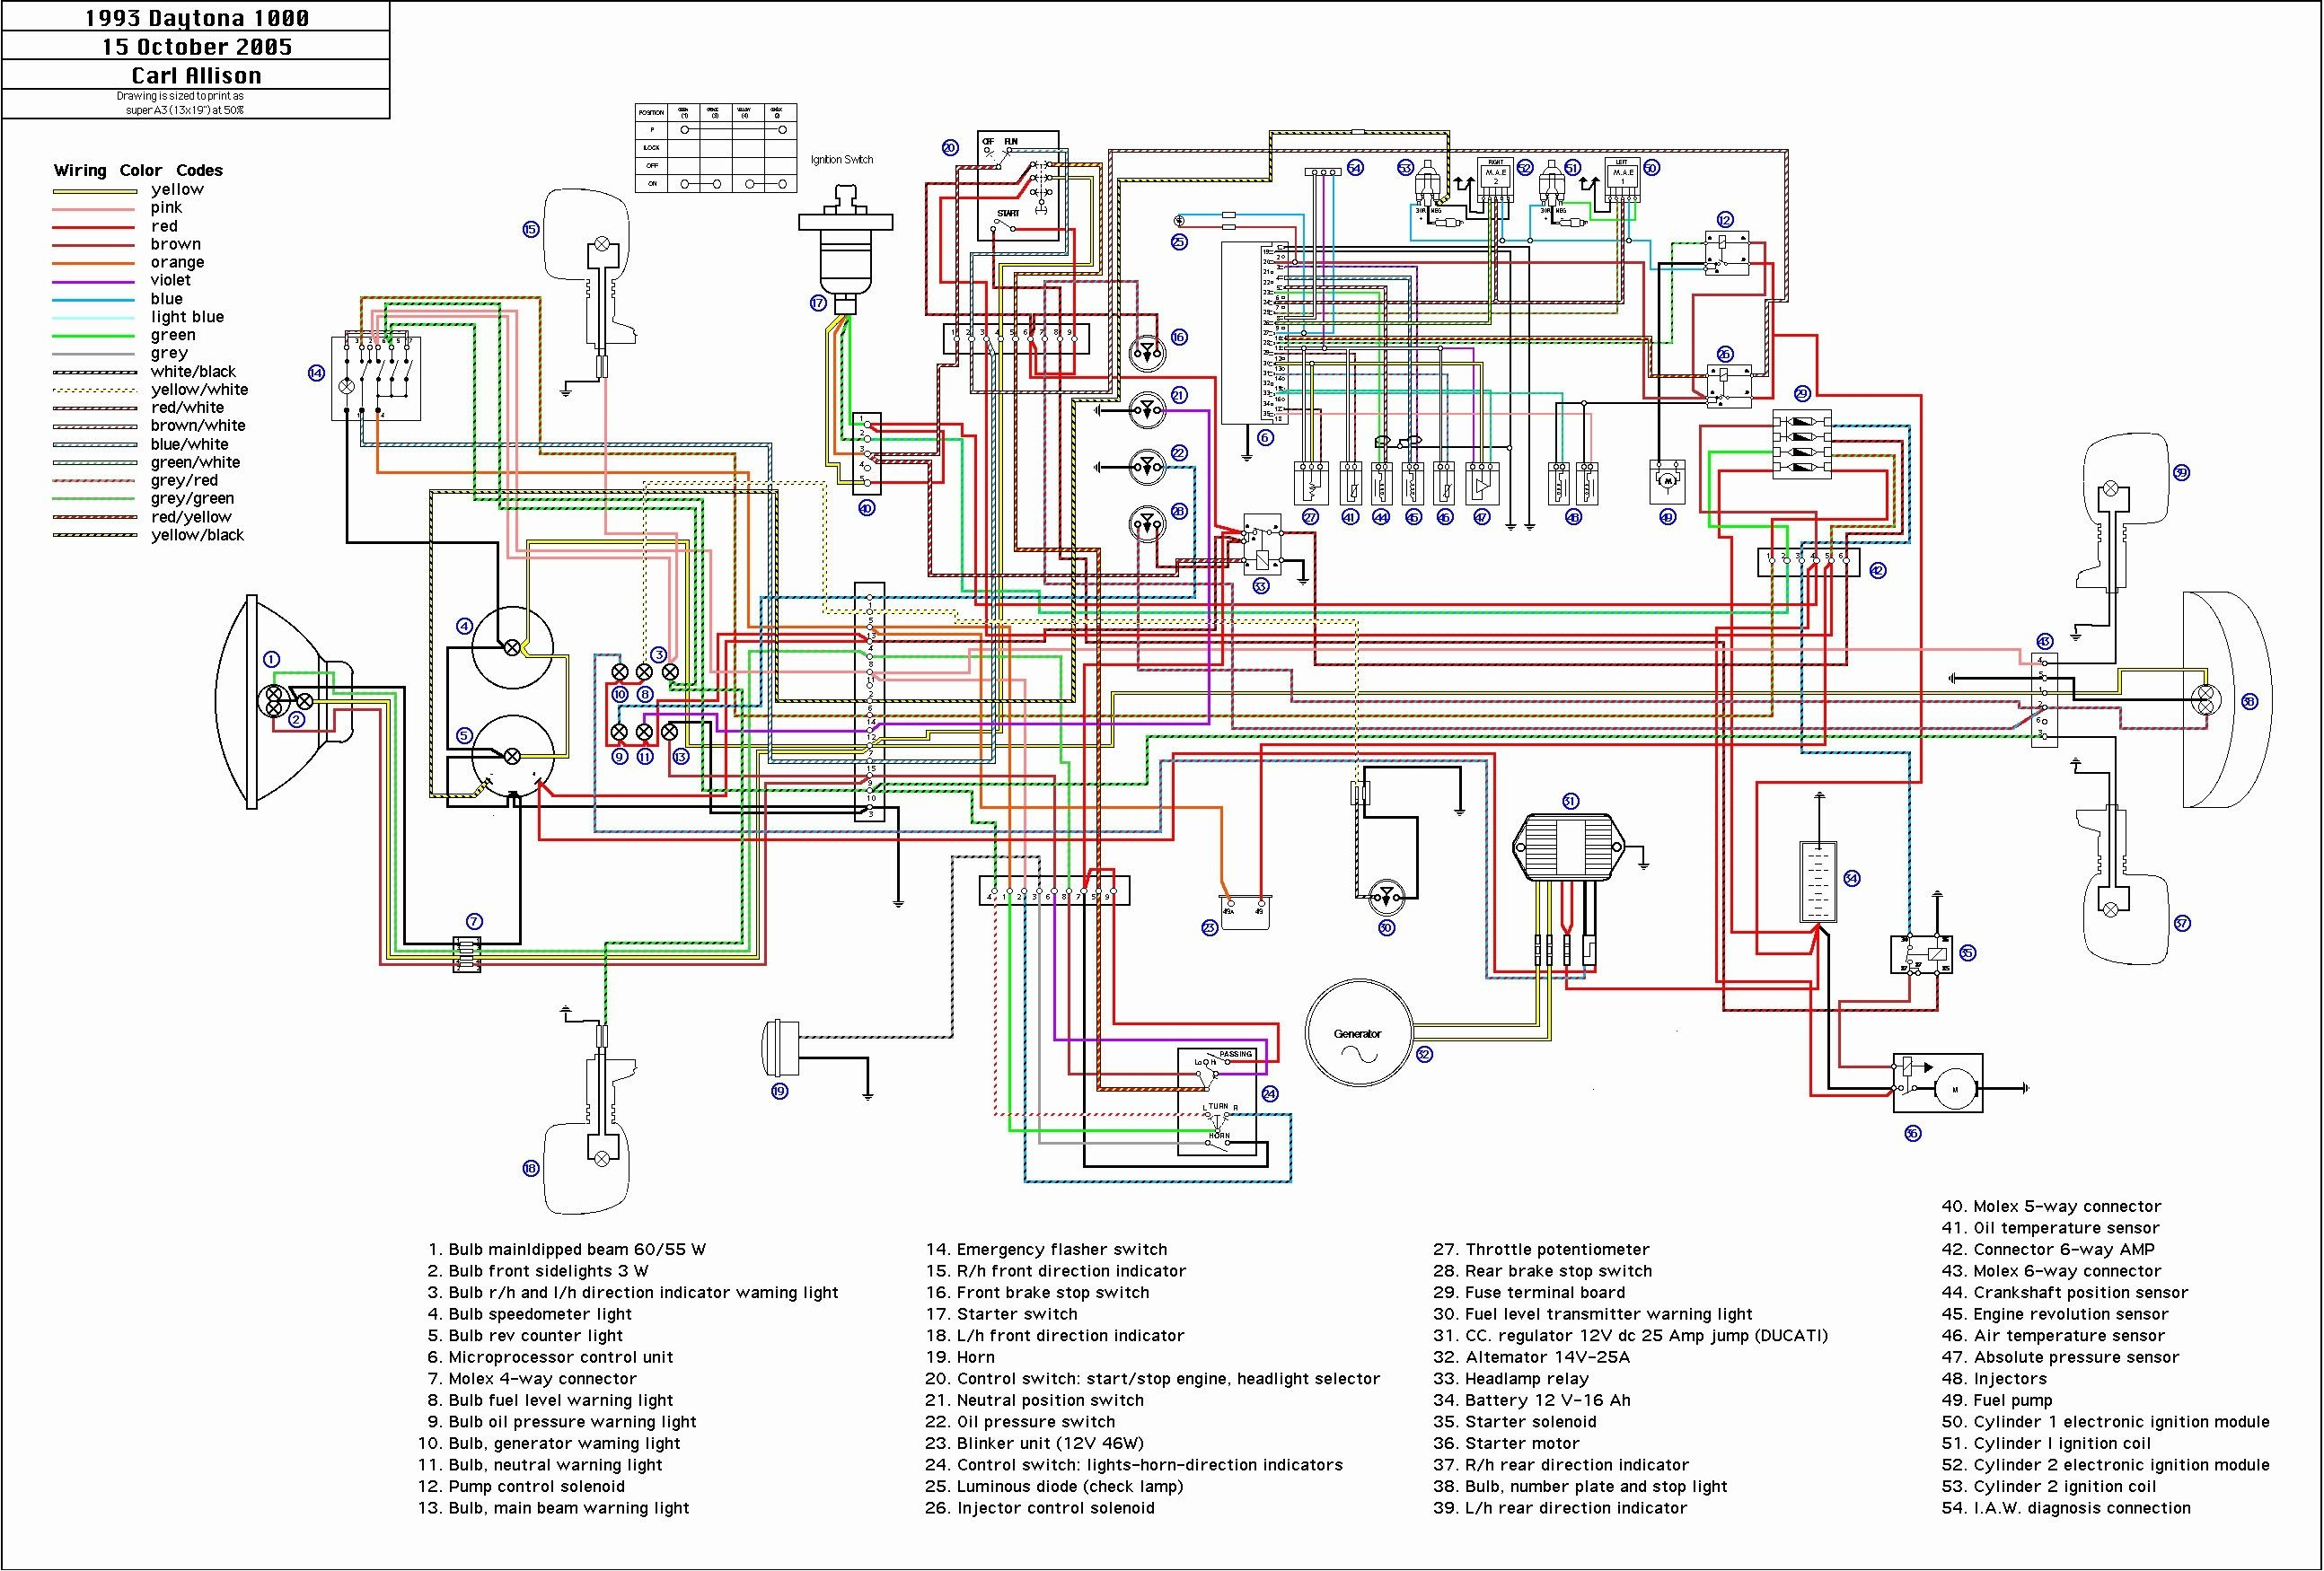 5 Way Light Switch Wiring Diagram - Database